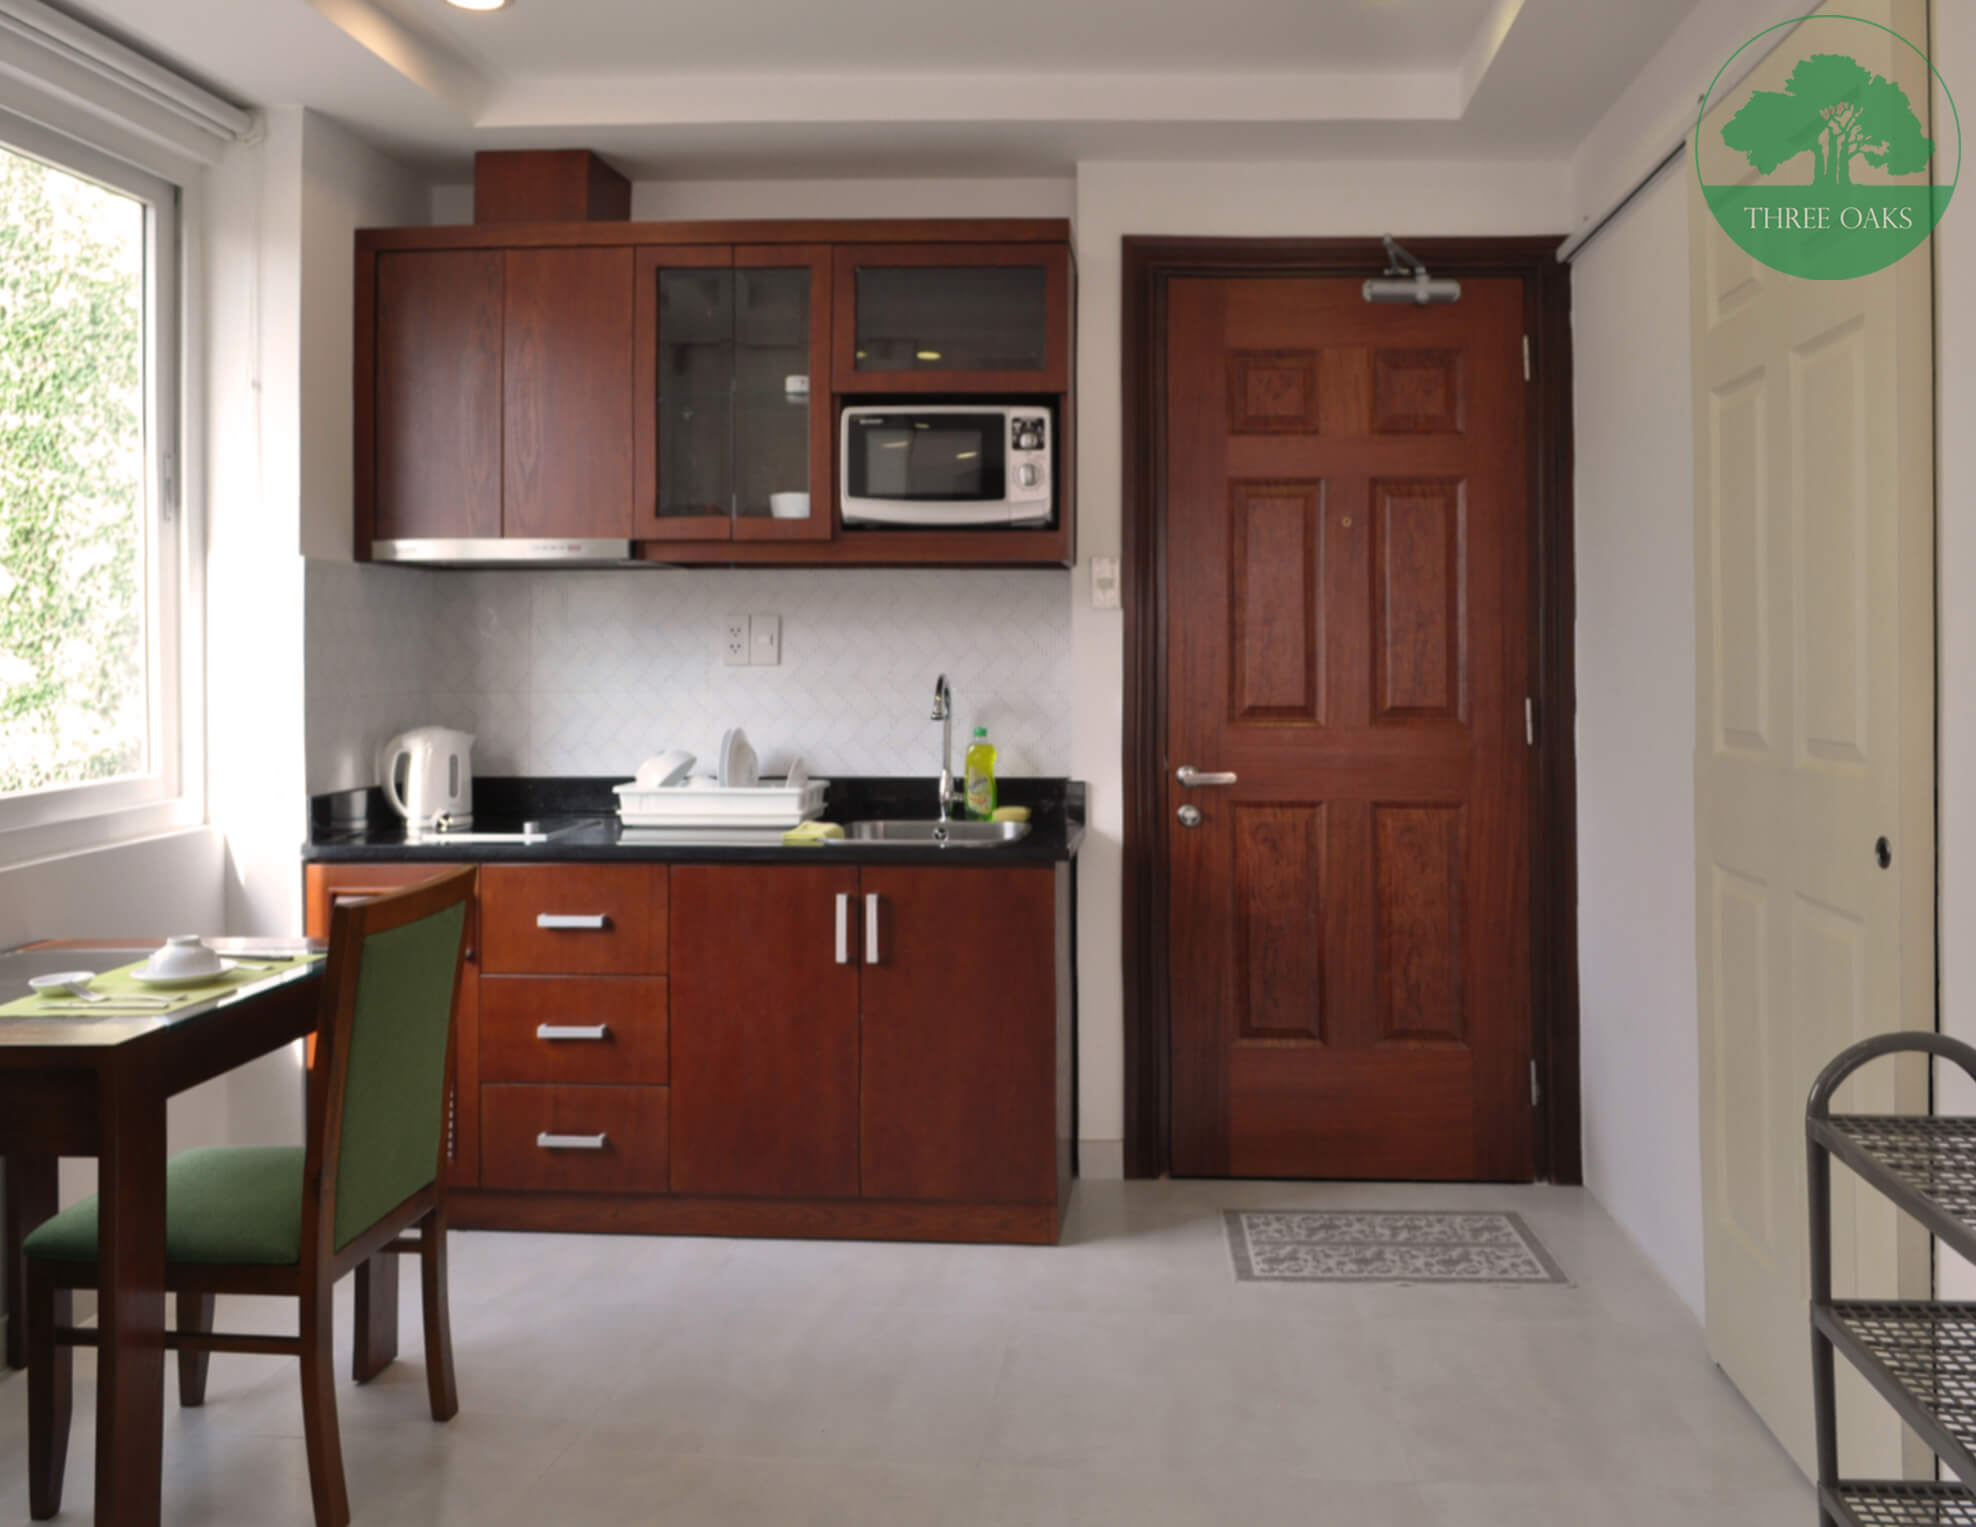 serviced-apartment-in-hcm-three-oaks-2-tybe-a-34